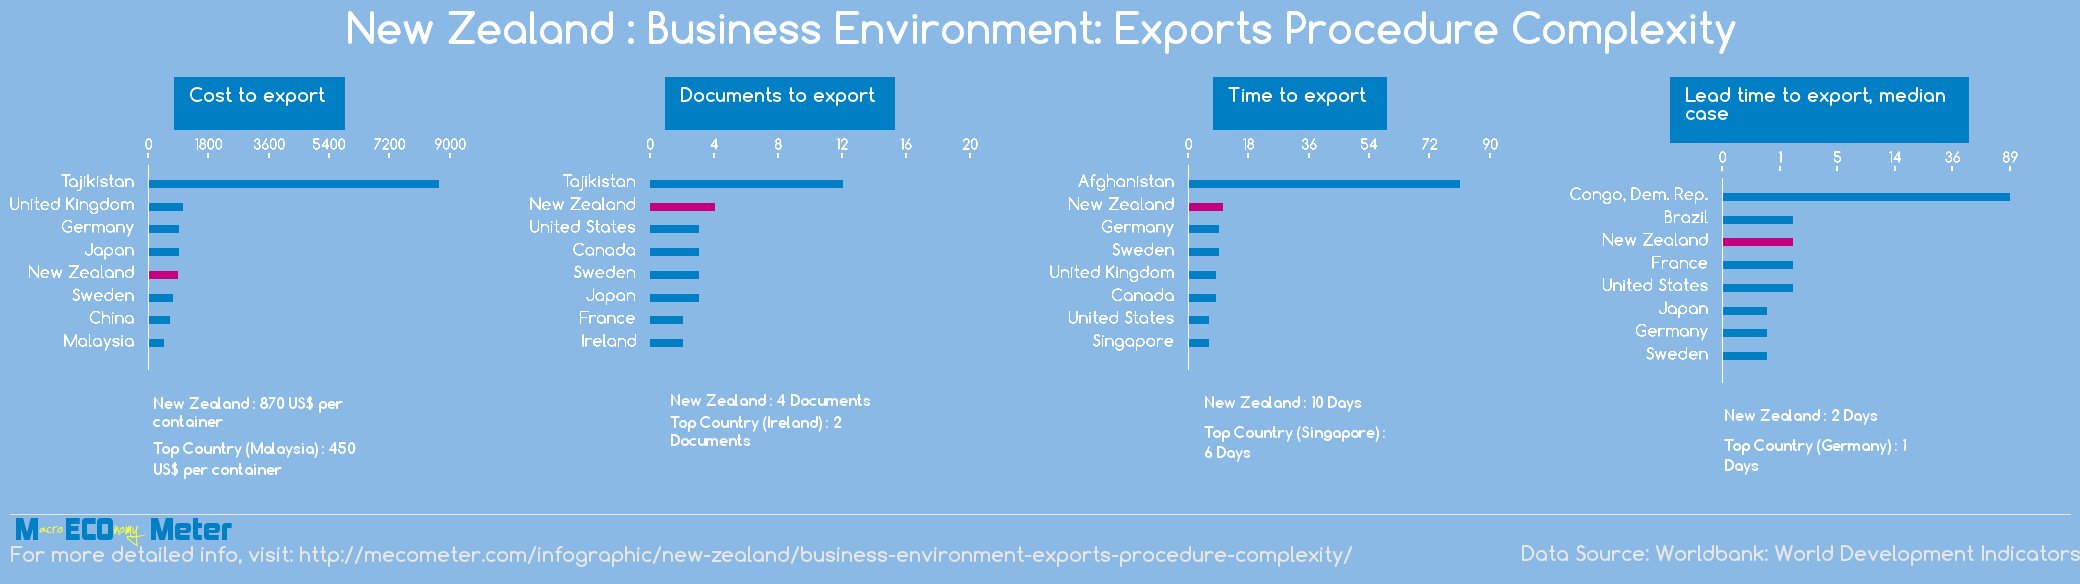 New Zealand : Business Environment: Exports Procedure Complexity